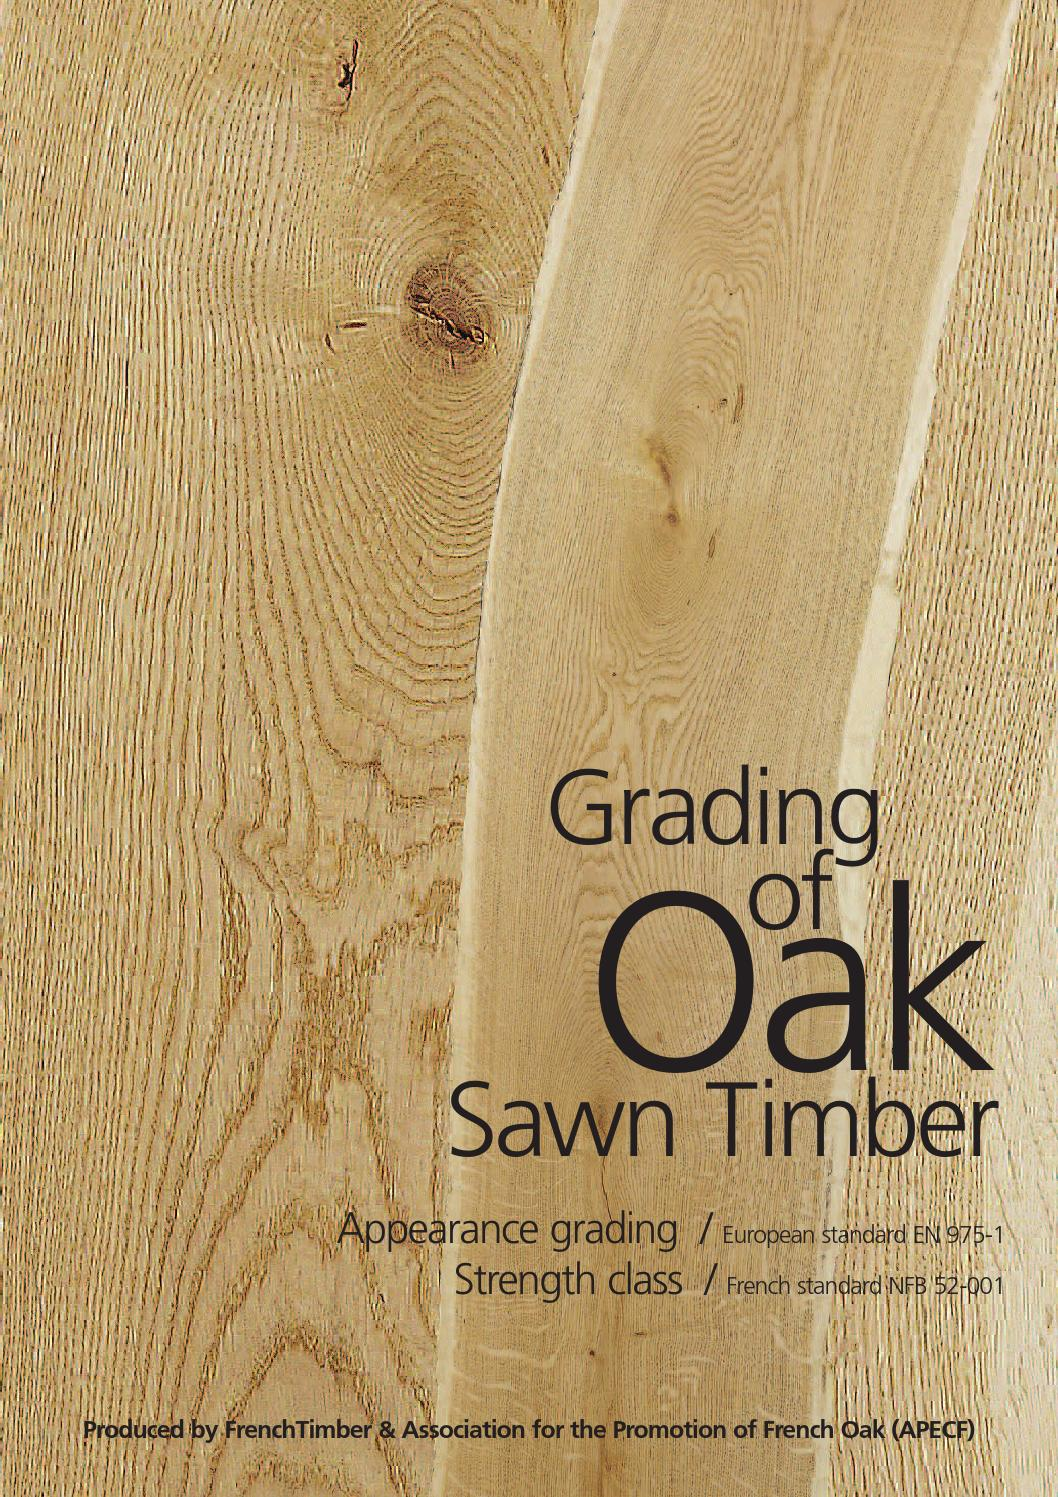 Grading of oak sawn timber frenchtimber by